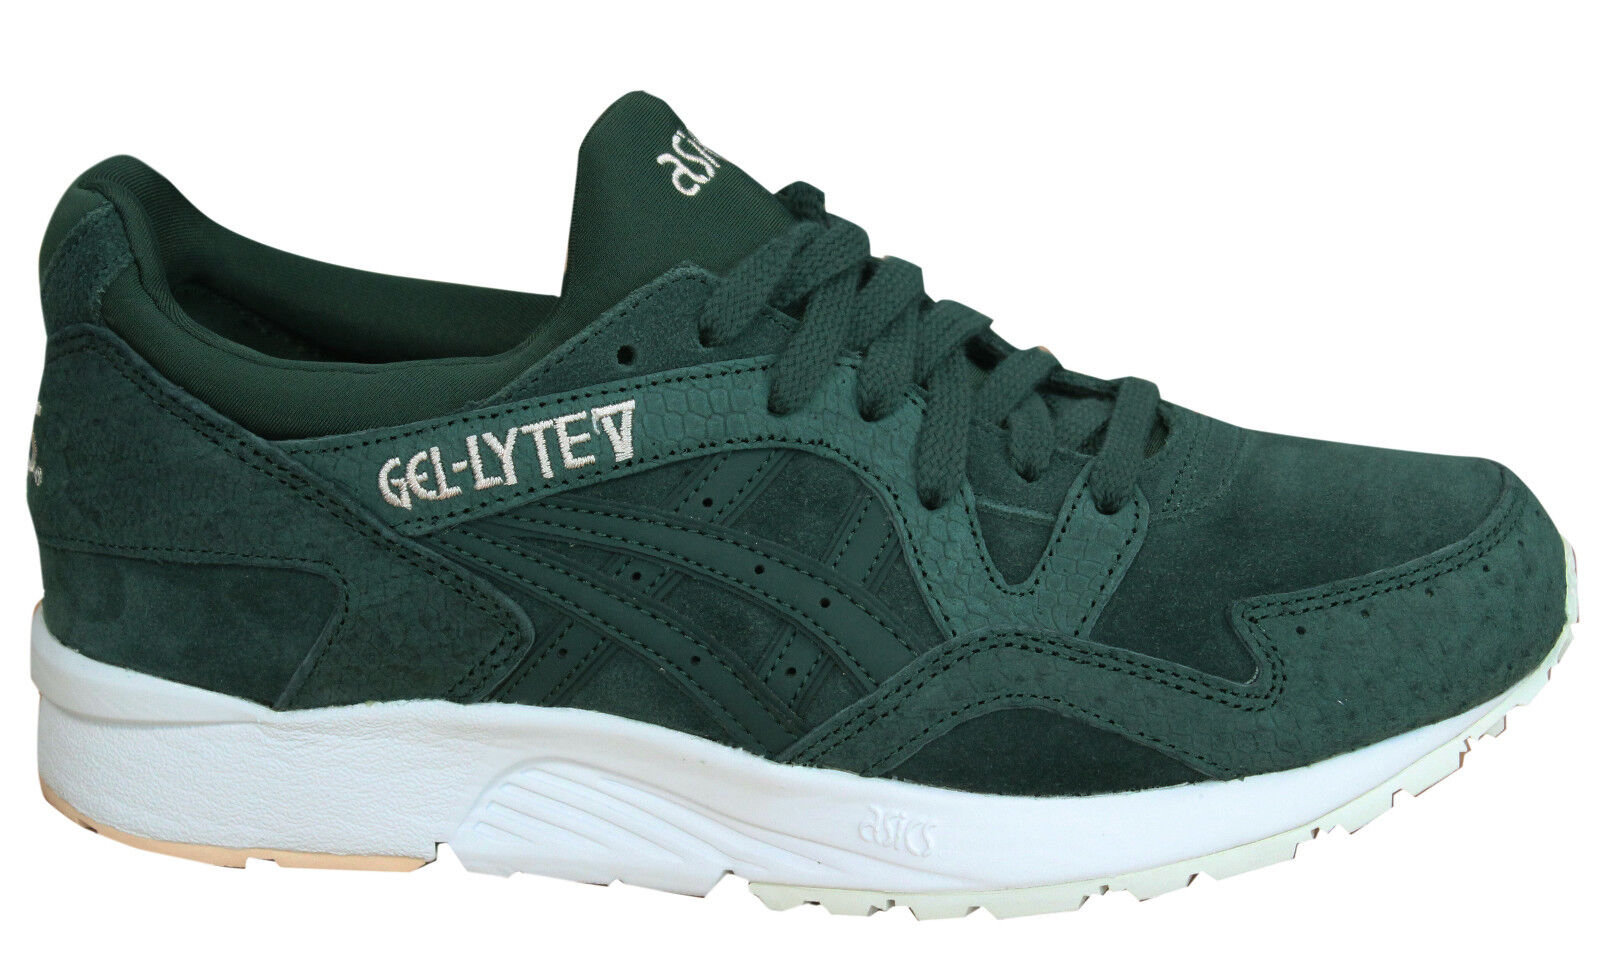 Asics Gel-Lyte V Lace Up White Green Leather Womens Trainers HL7DL 8585 M8 Cheap and beautiful fashion